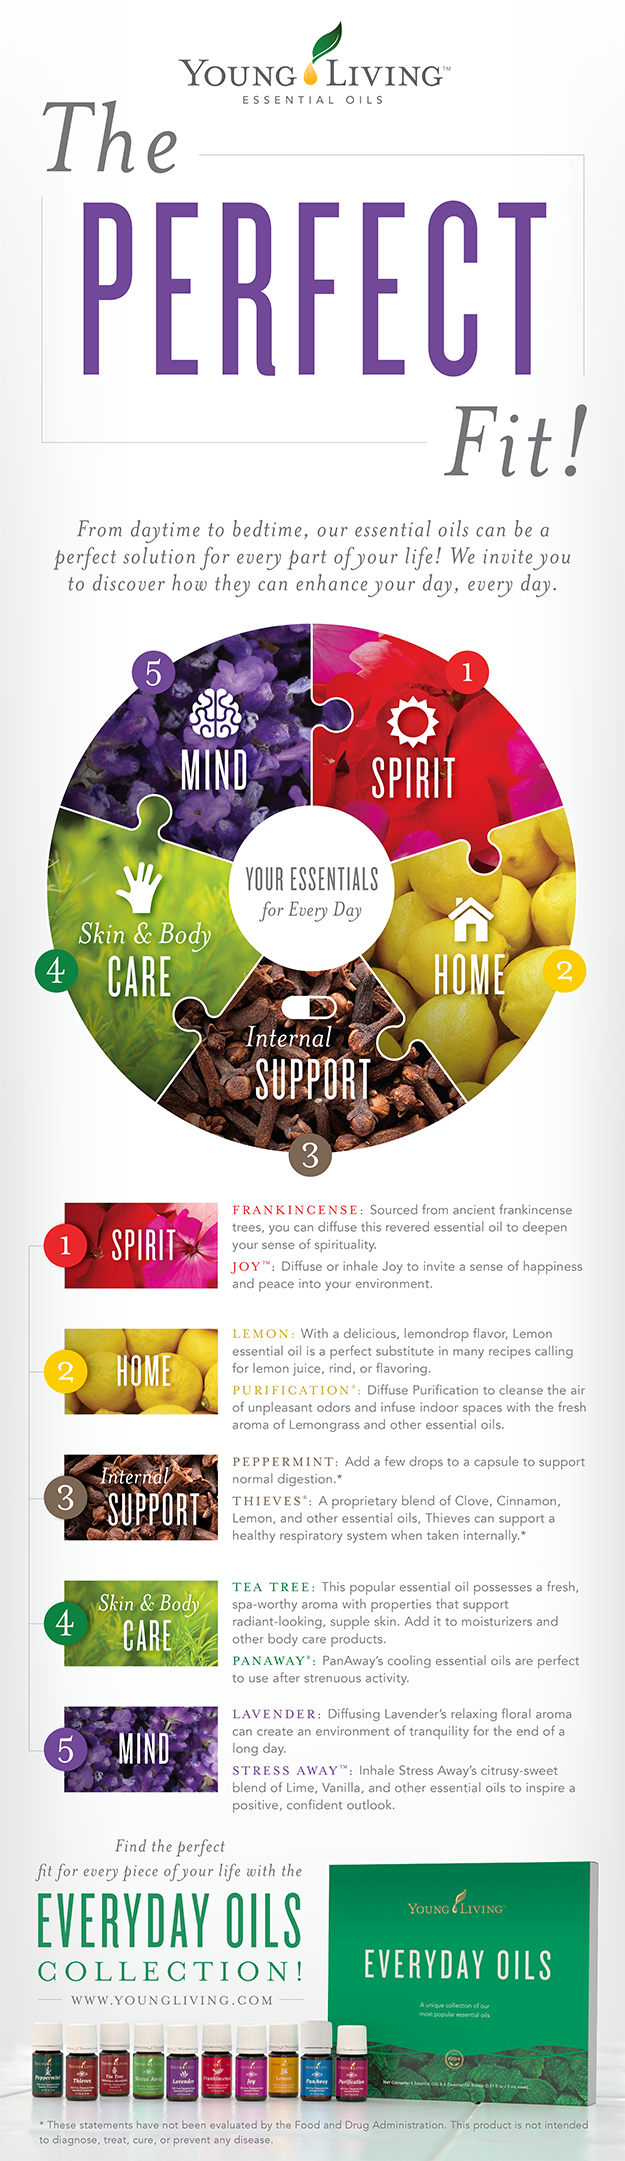 Introducing Young Living Essential Oils!